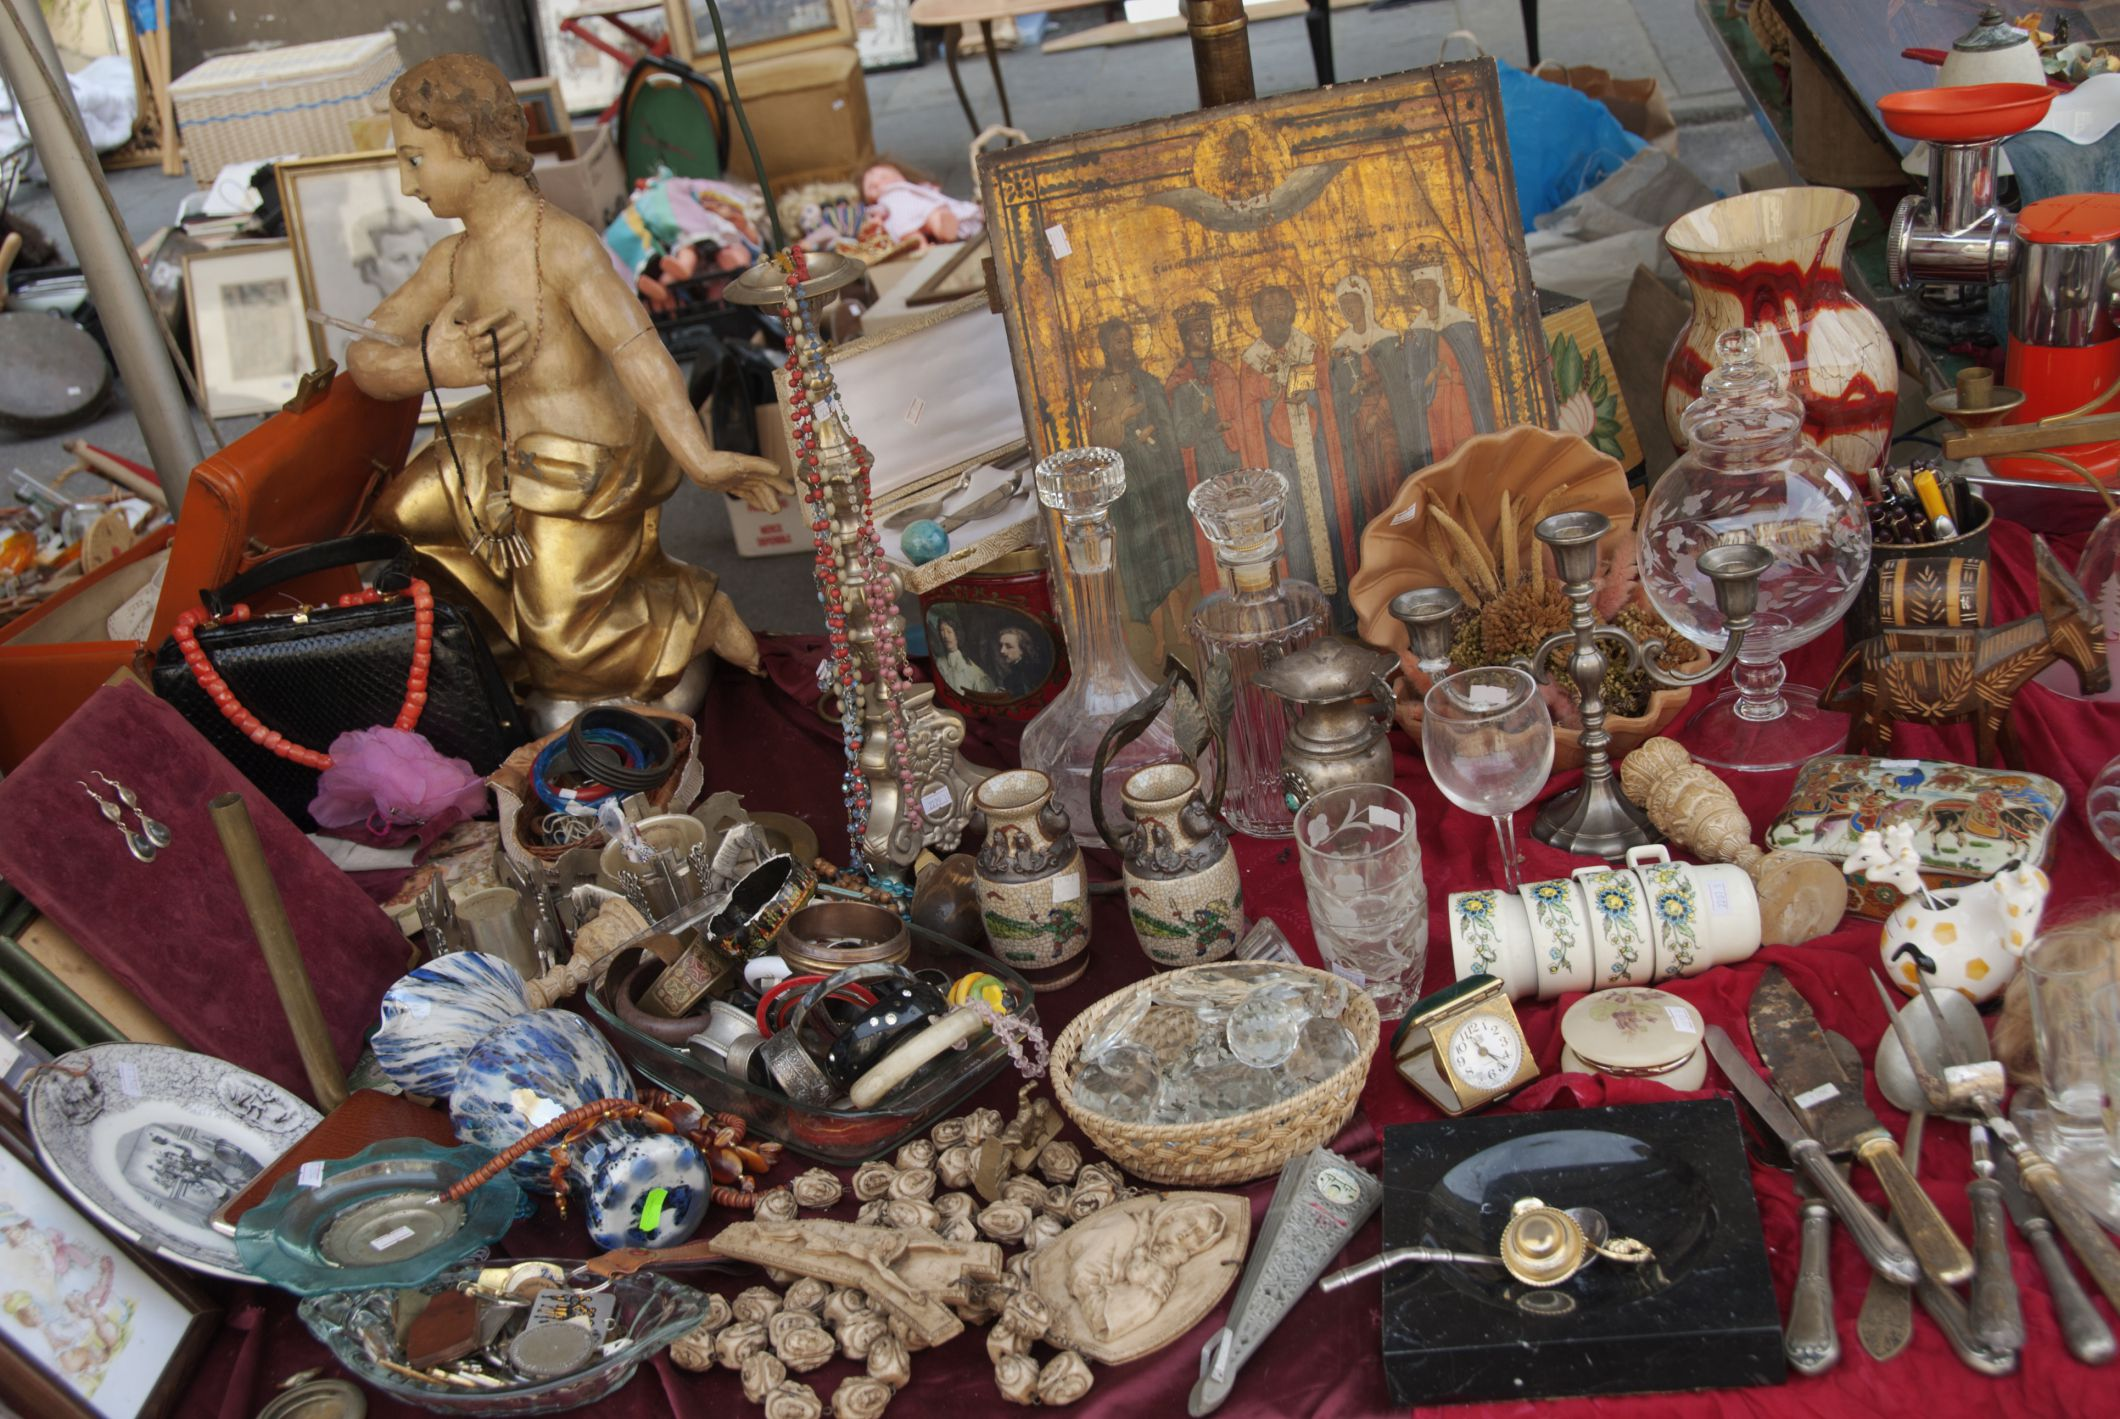 Marburger Farm Antique Show In Round Top Texas